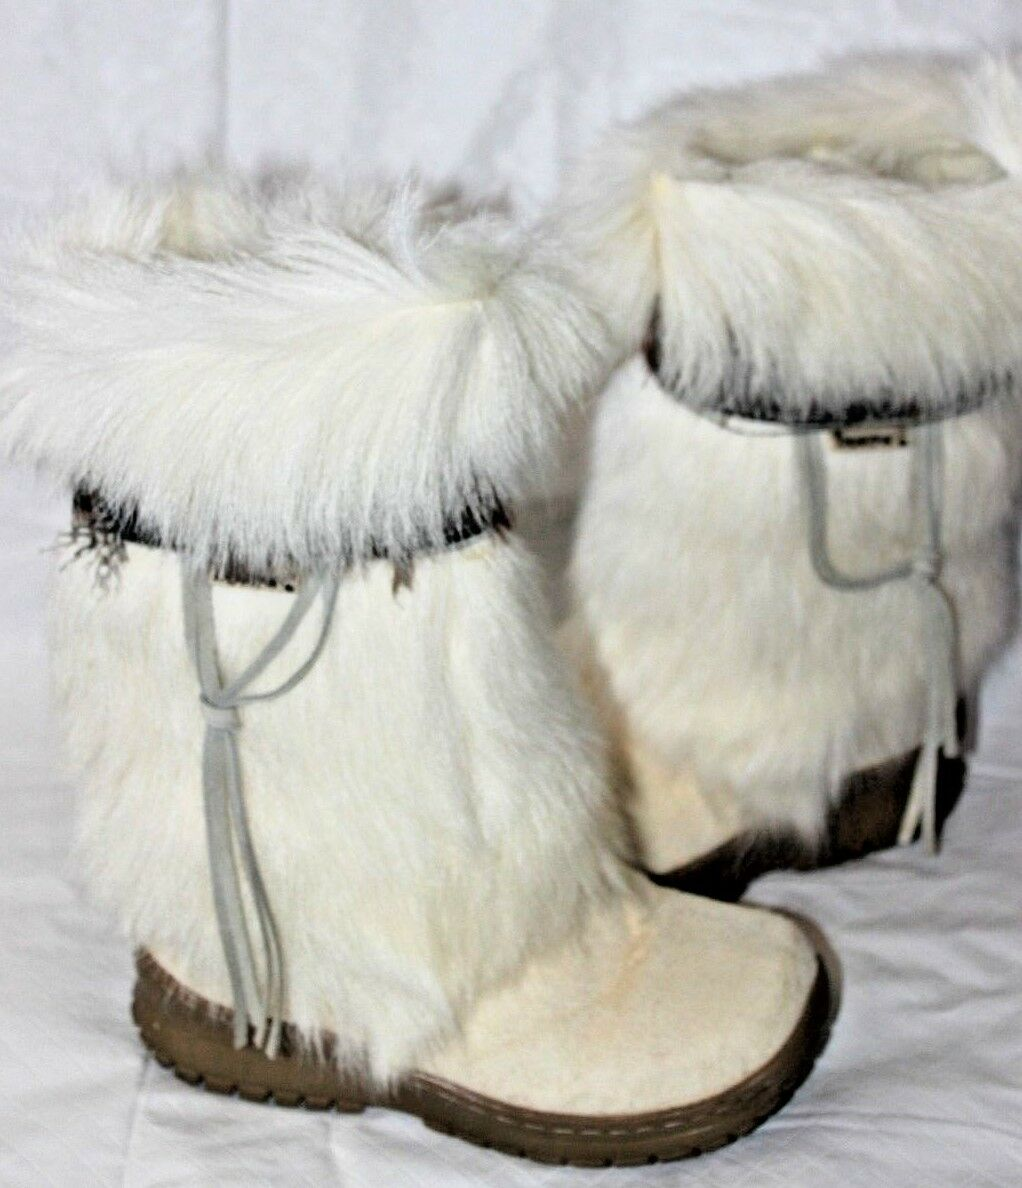 BEARPAW KOLA II WEISS GOAT FUR AND FEATHERS W/SHEEPSKIN LINING SZ 6